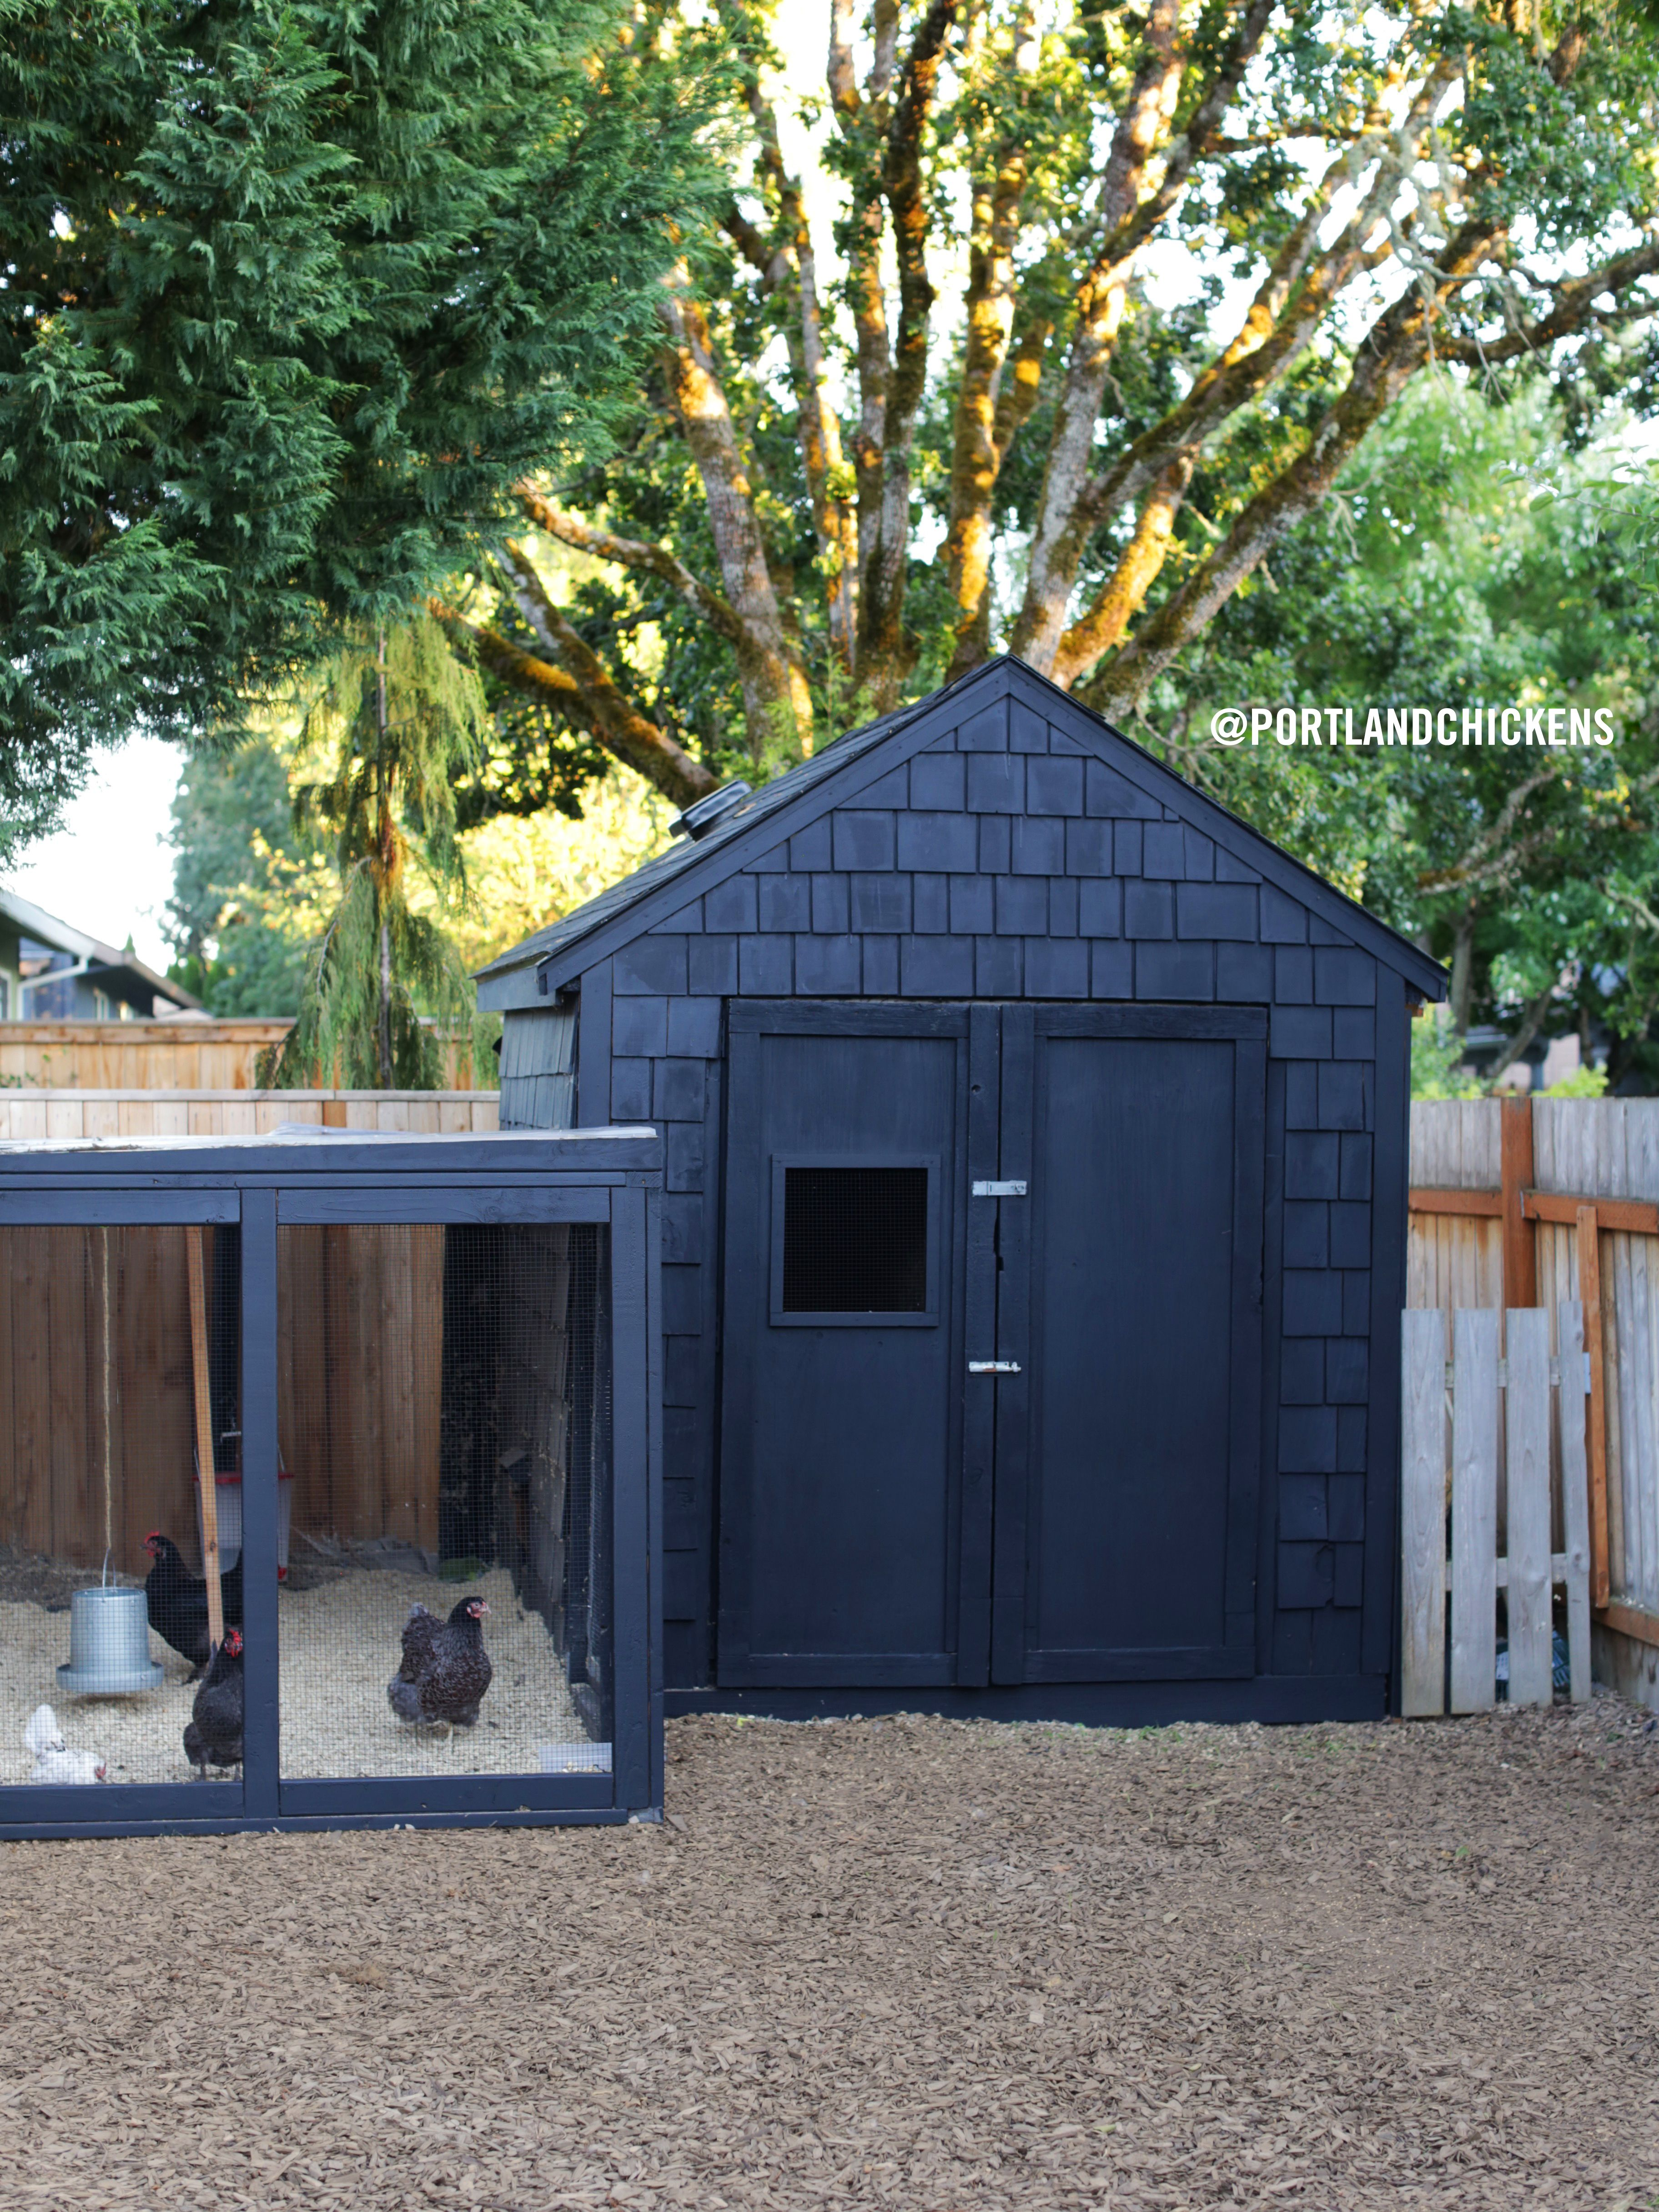 Portland Chicken S Black Chicken Coop Simply Painting The Coop Black Instantly Updated It And Made It Feel Mo Chicken Coop Run Chicken Coop Urban Chicken Coop